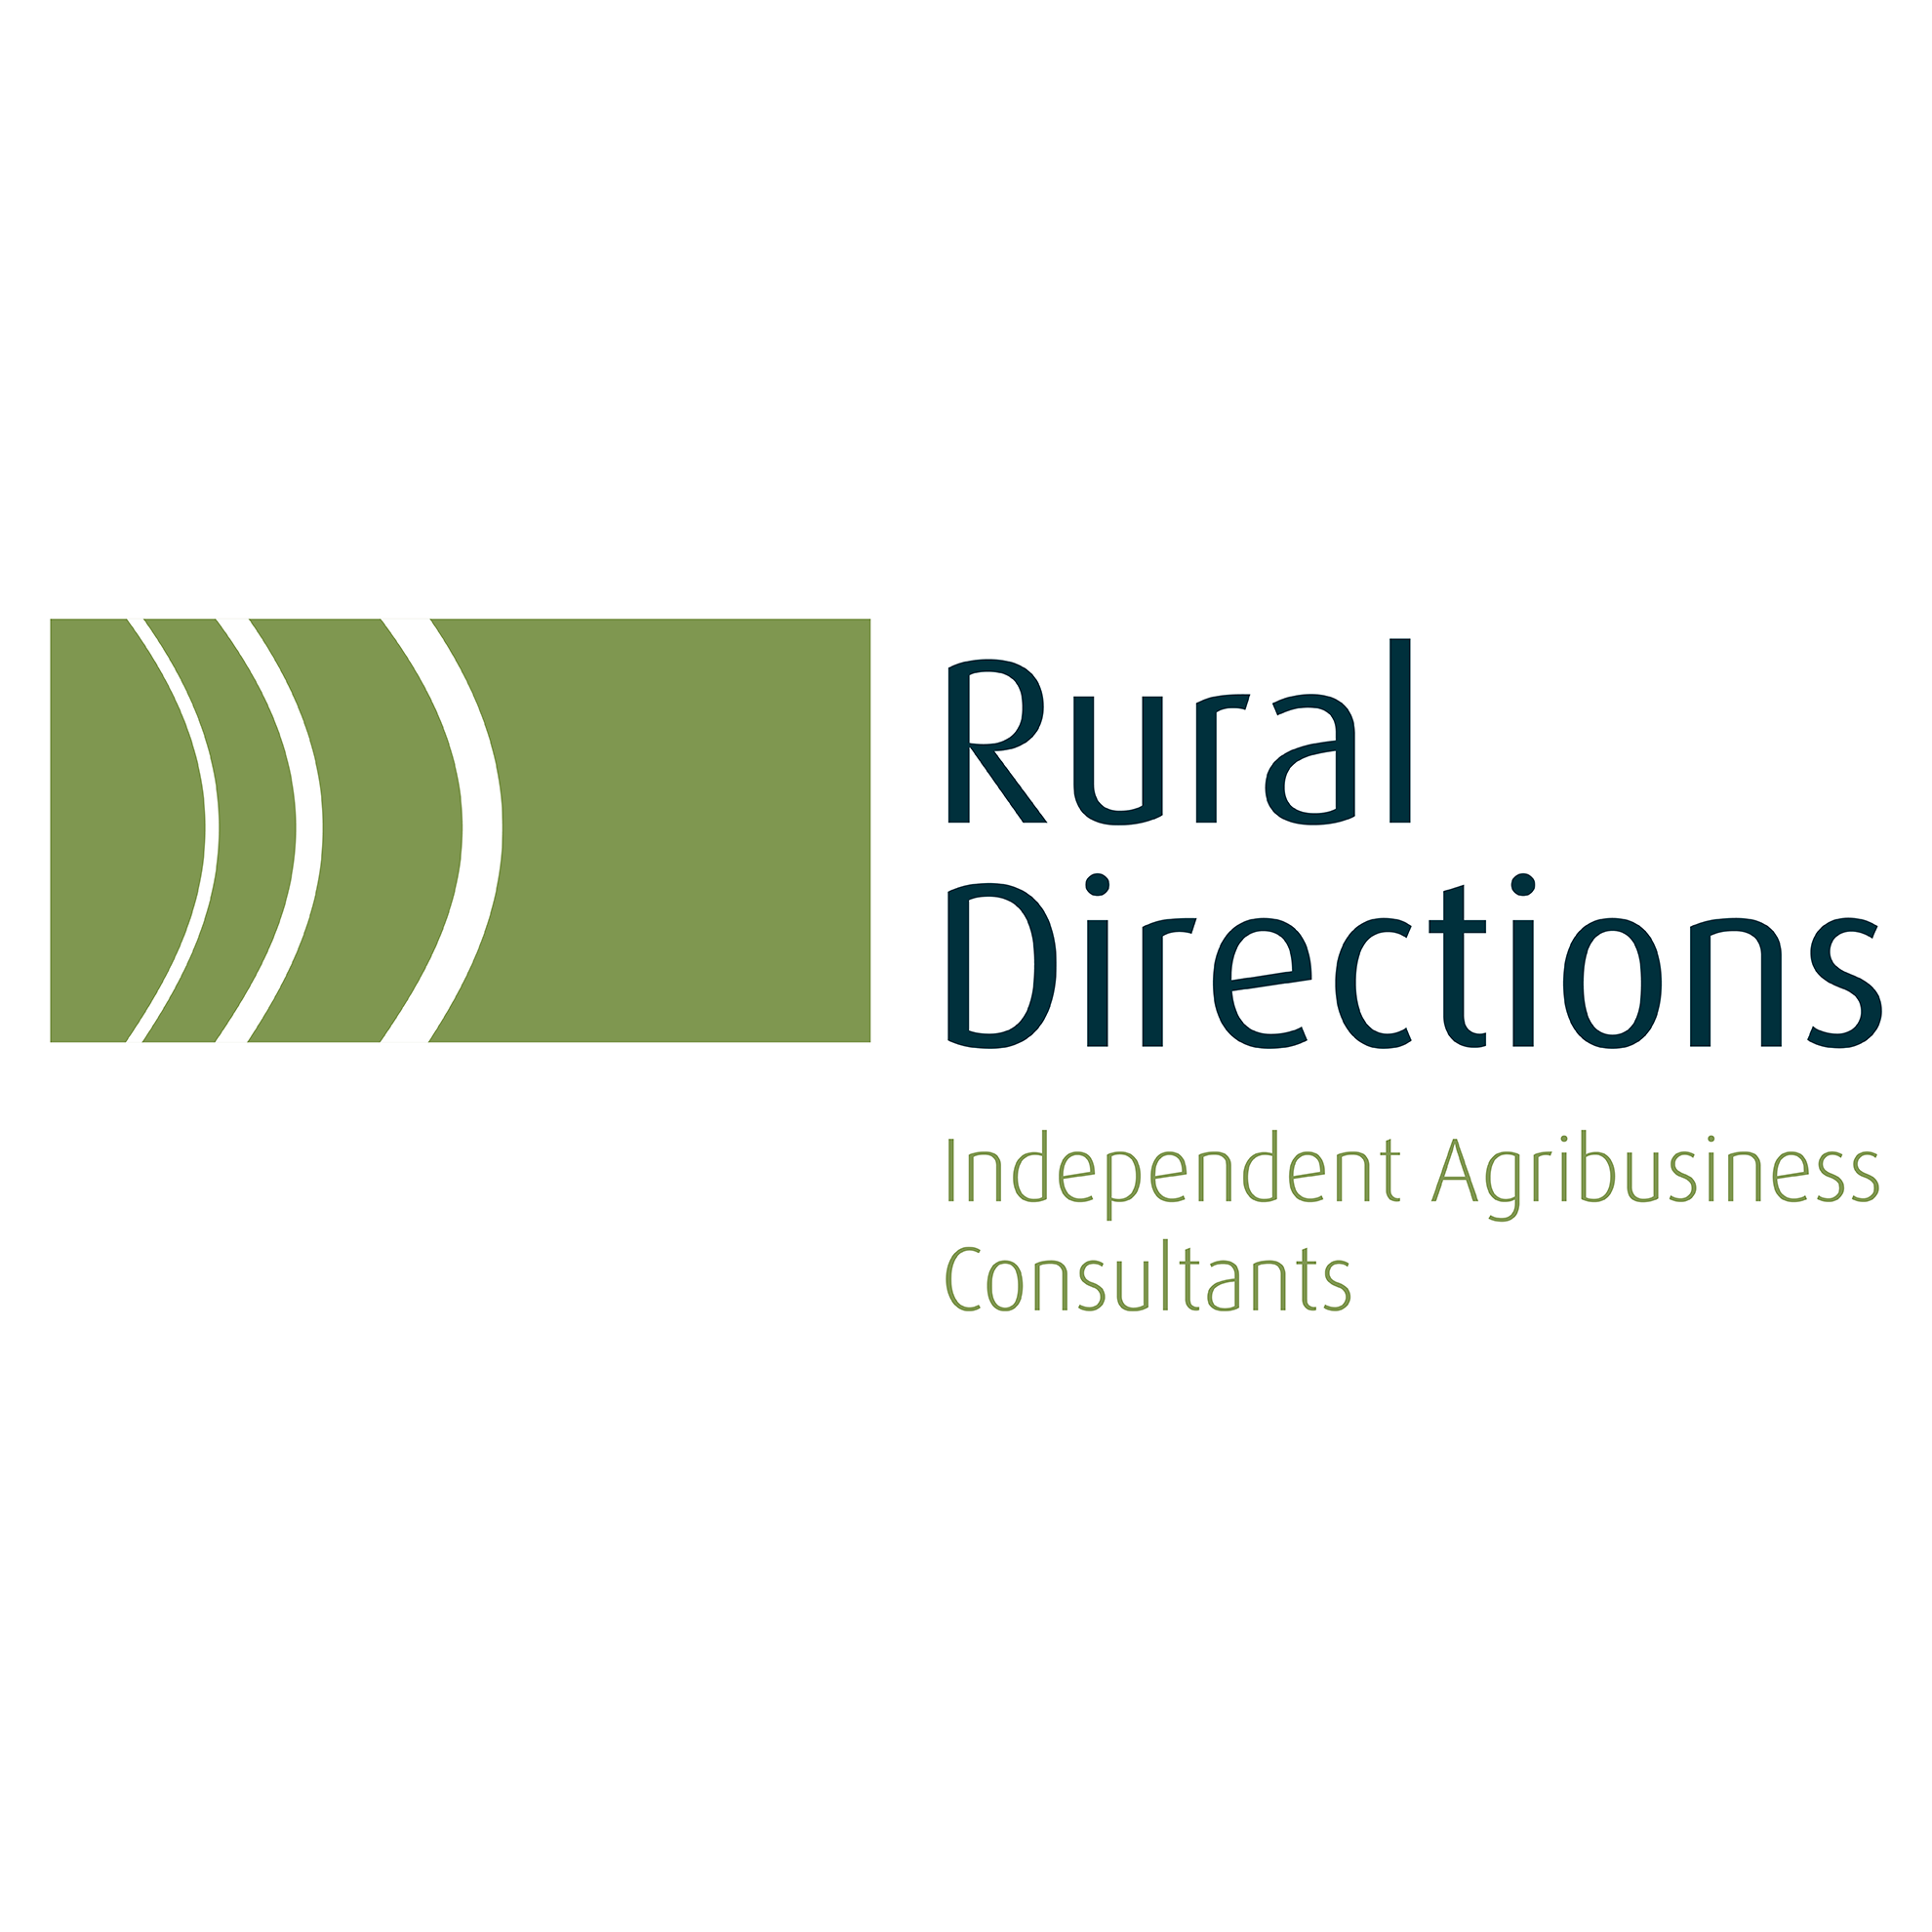 Rural Directions logo